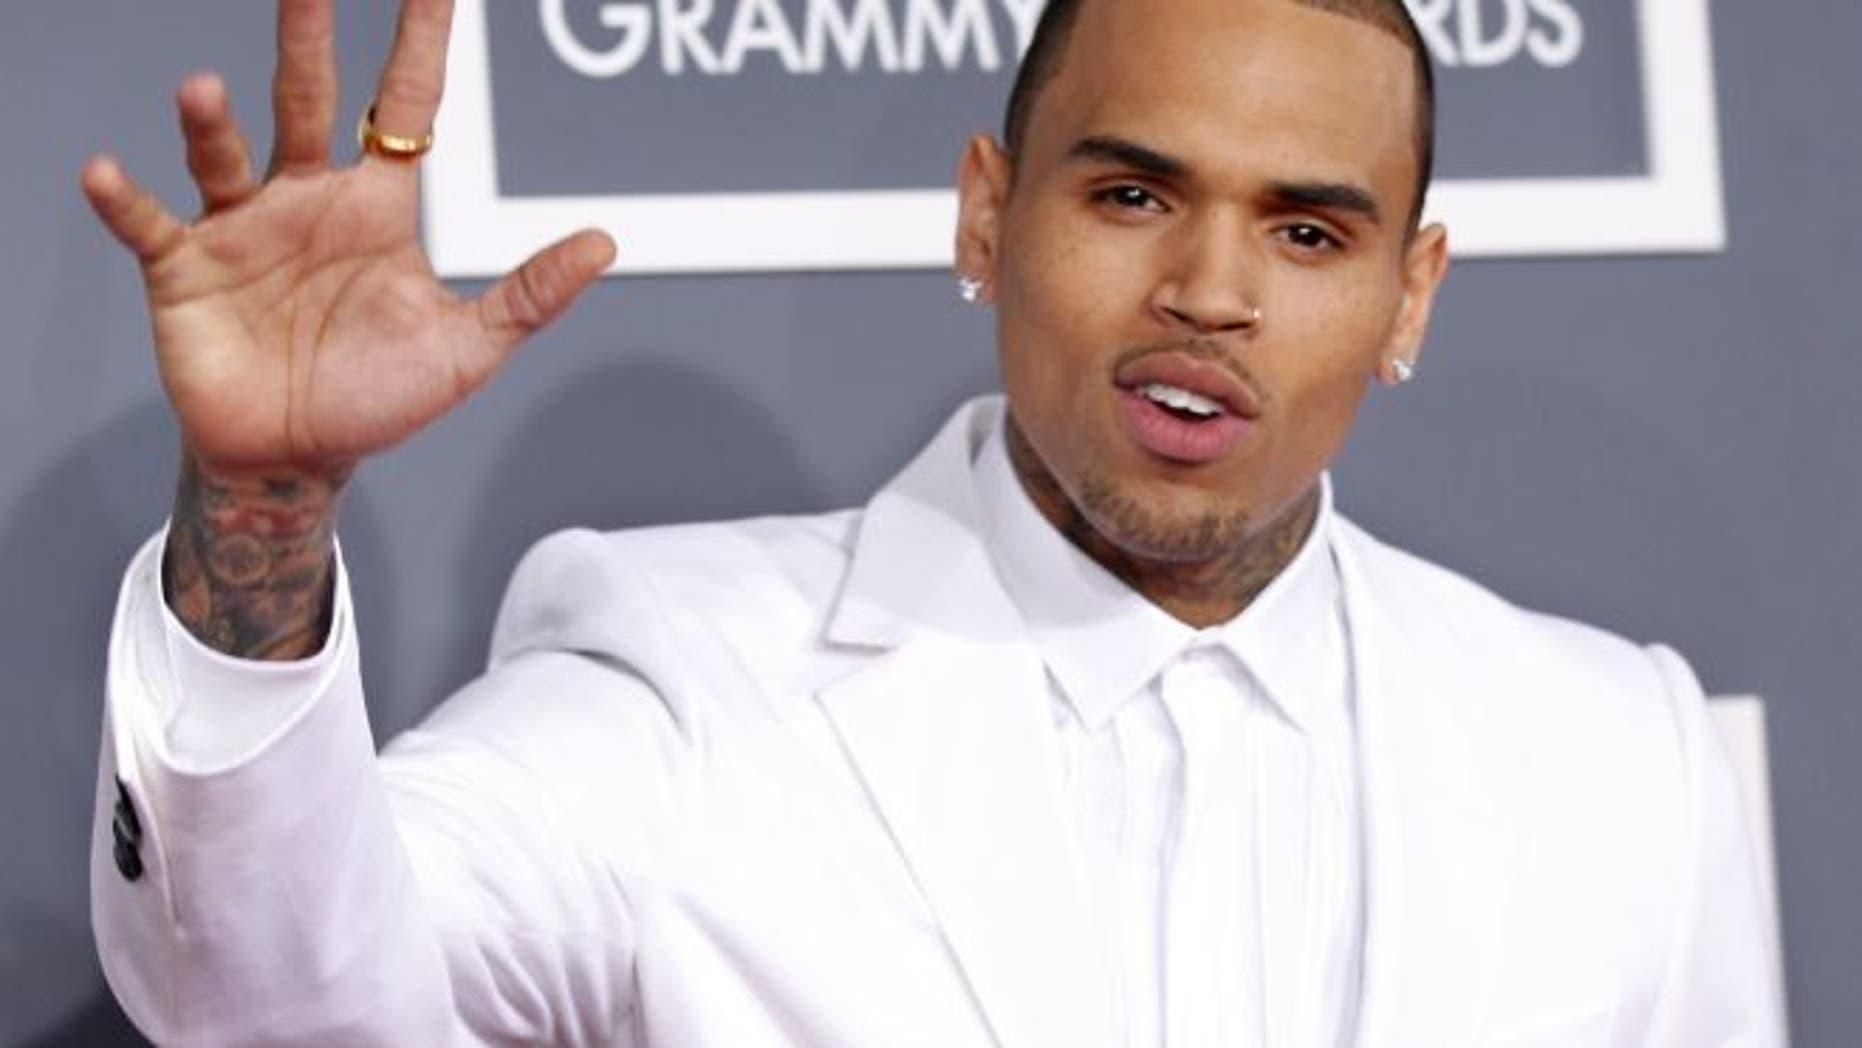 FILE: Feb. 10, 2013: Chris Brown arrives at the 55th annual Grammy Awards.